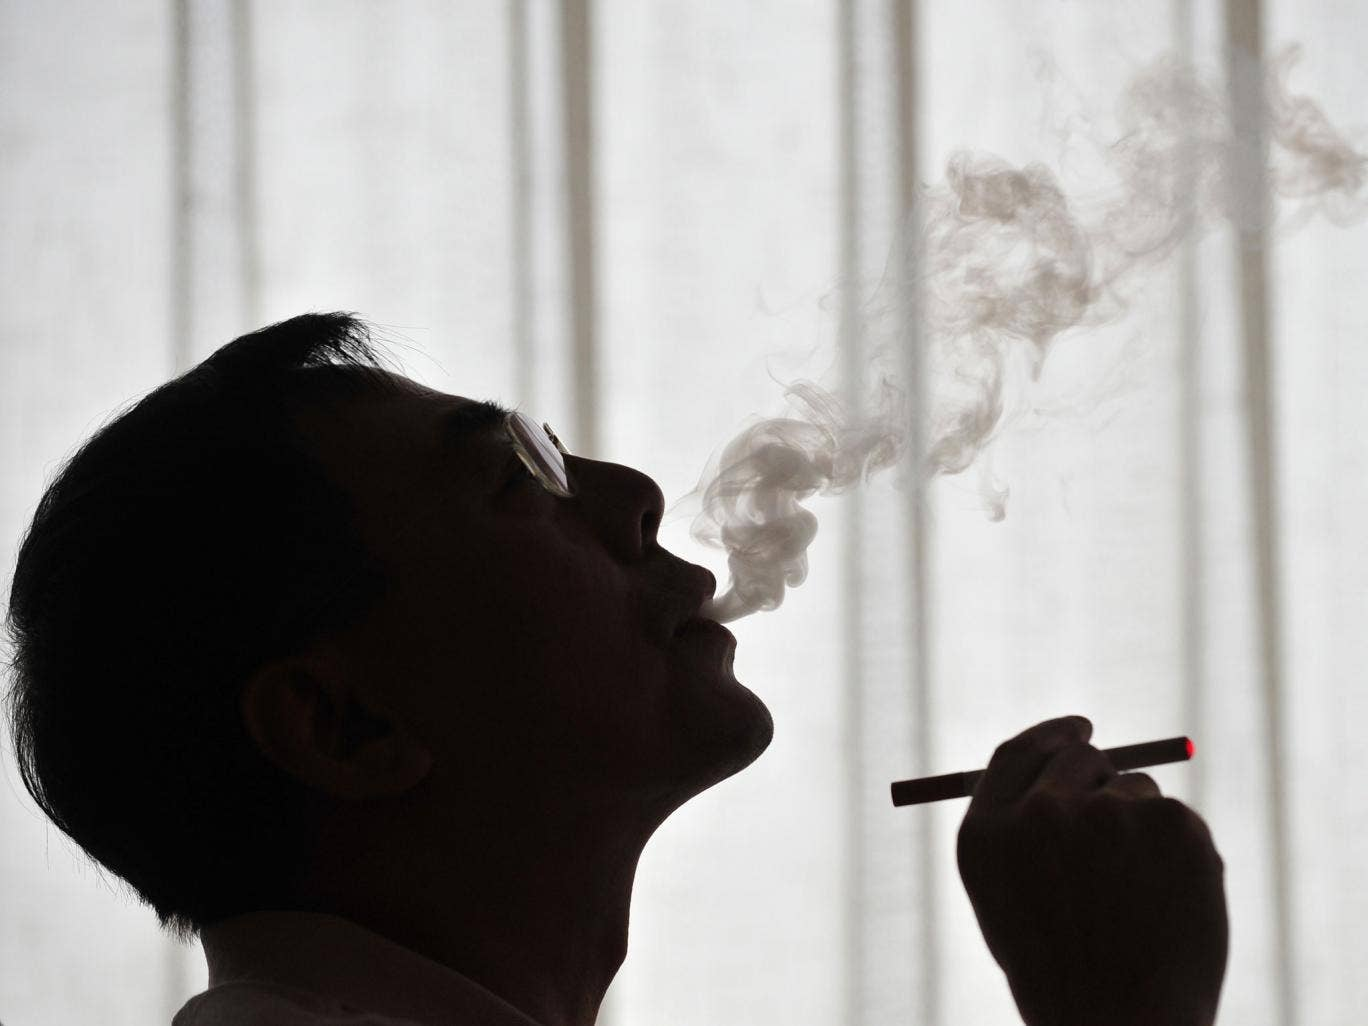 The inventor of the electronic cigarette, Hon Lik smoking his invention in Beiijng in 2009